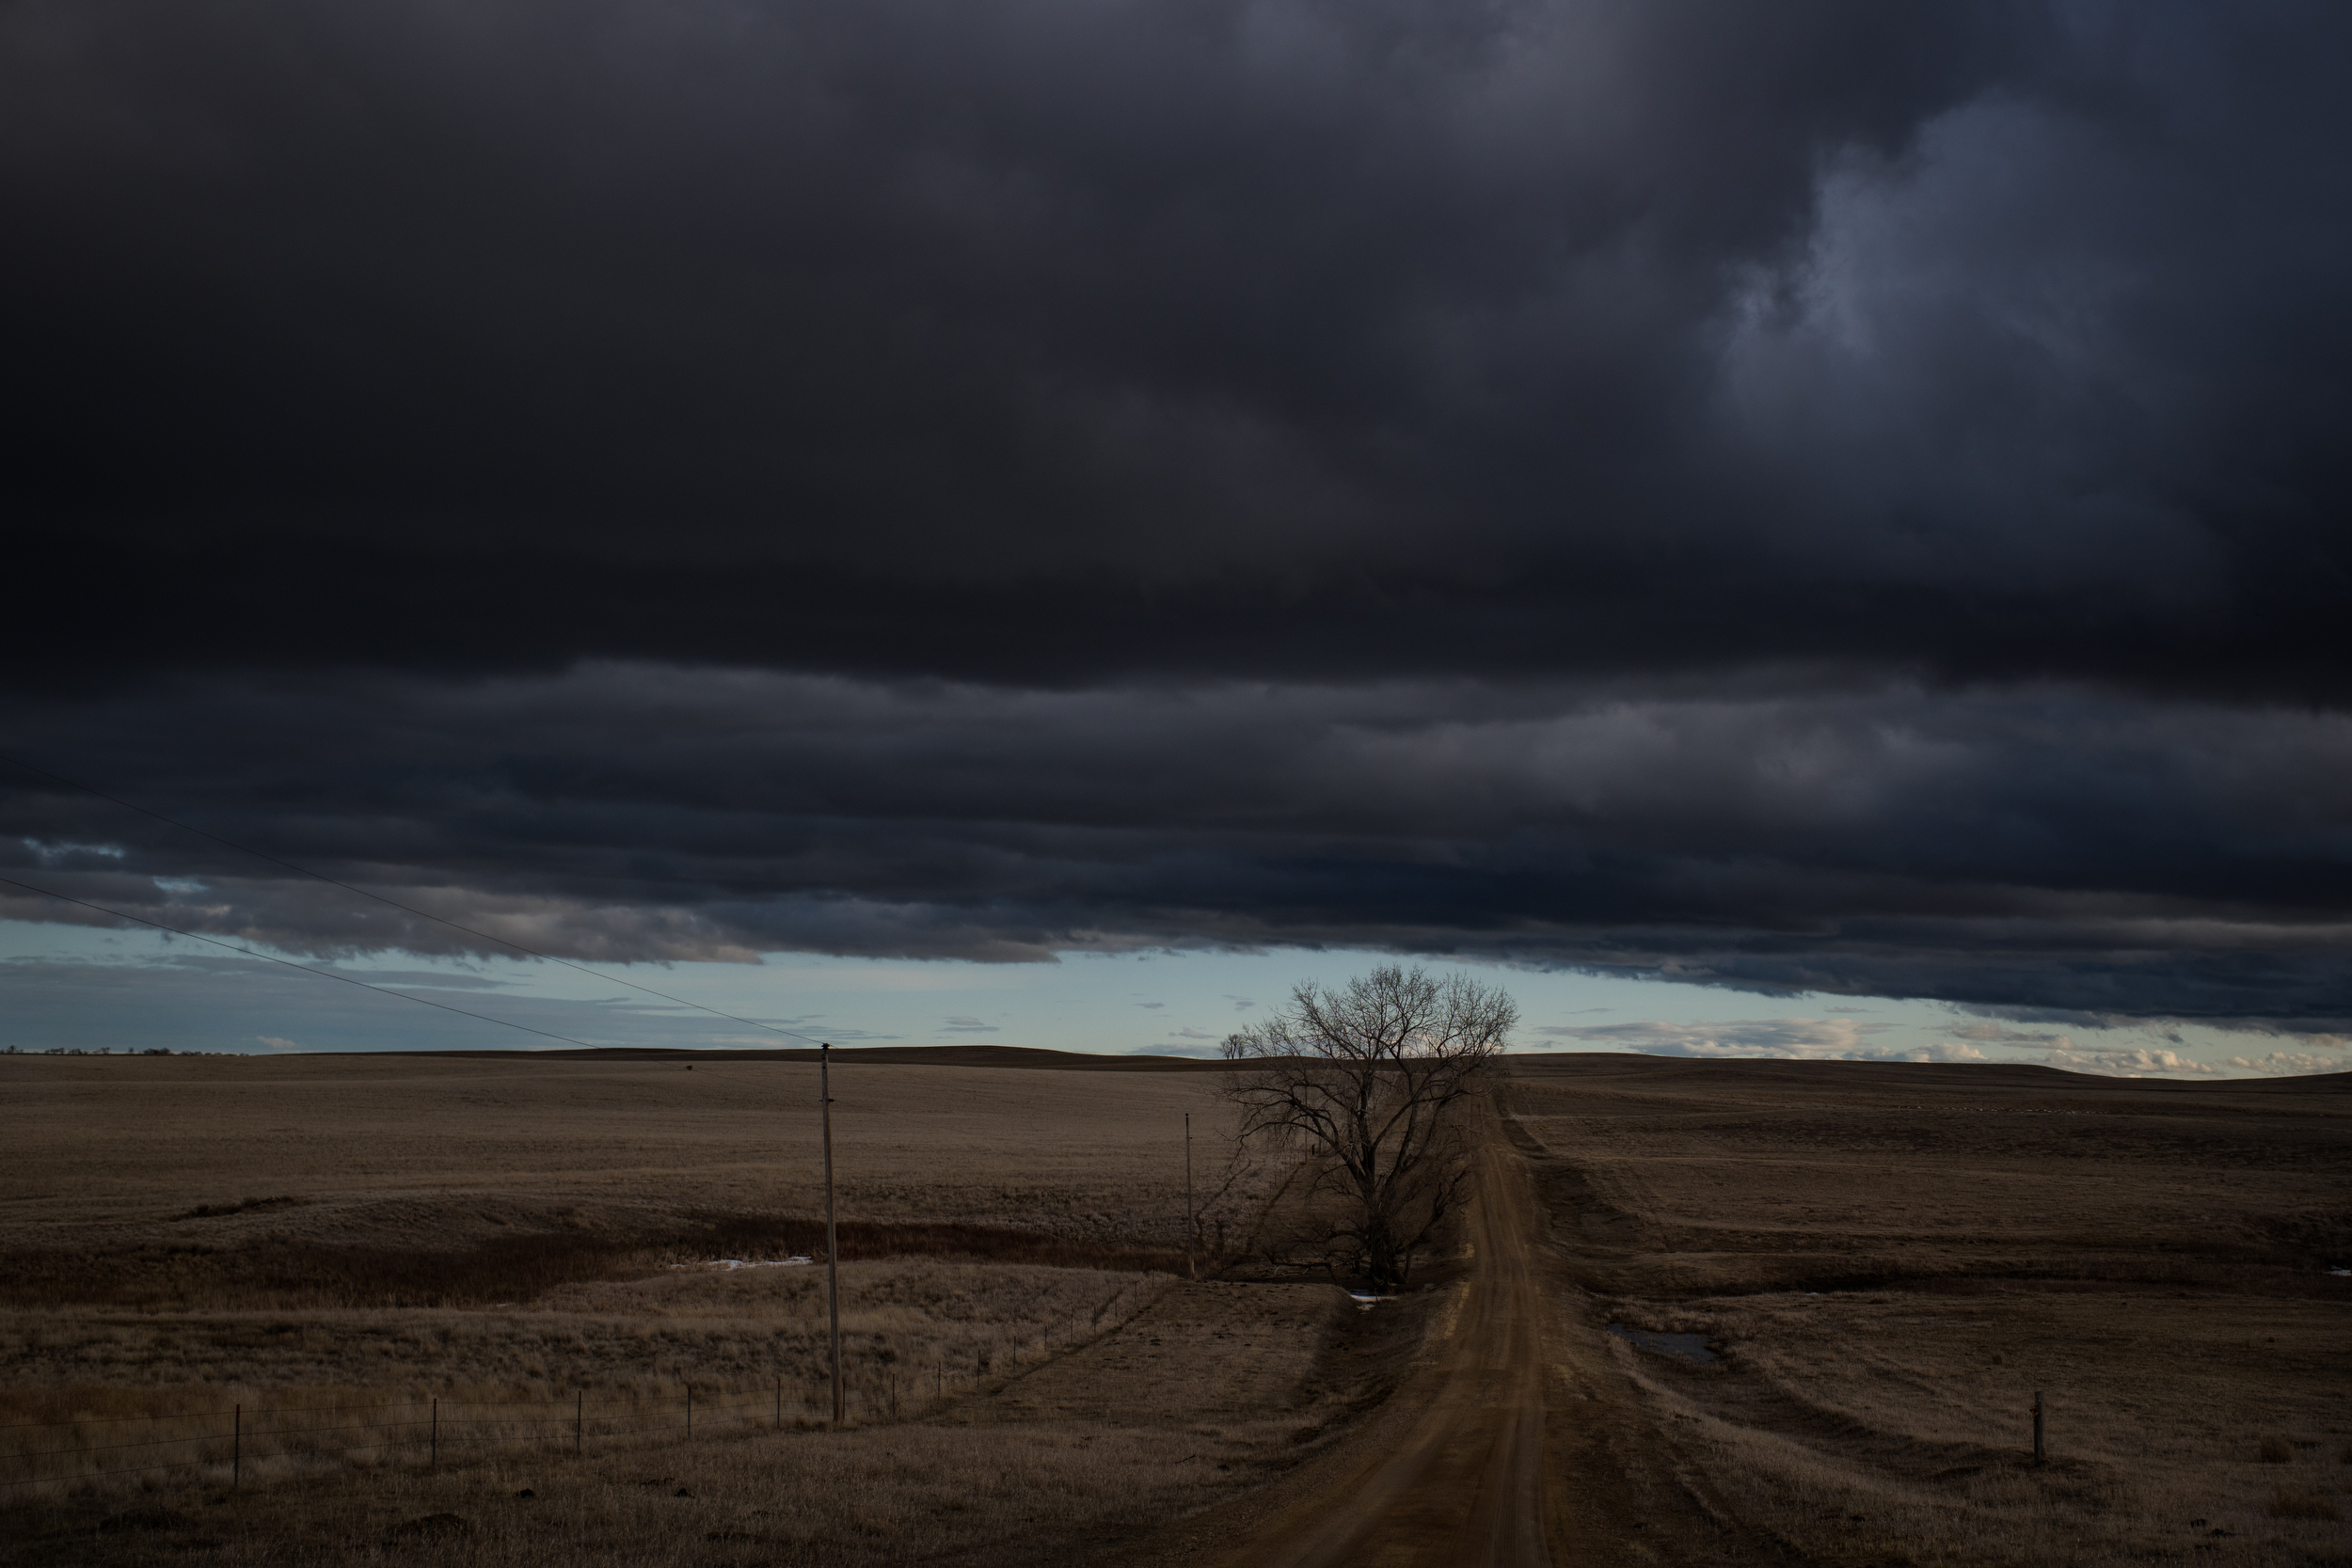 "45º20'46.8""N, 101º42'41.4""W. 141 miles from the nearest McDonald's.  Stormy clouds hang over a dirt road in Isabel, SD on April 11, 2018. Even with a pickup and four-wheel drive, such roads quickly become impassable when storms can dump 10 inches of snow and 50+ mph wind gusts are common, as they were when winter storm Evelyn hit on April 12, 2018."